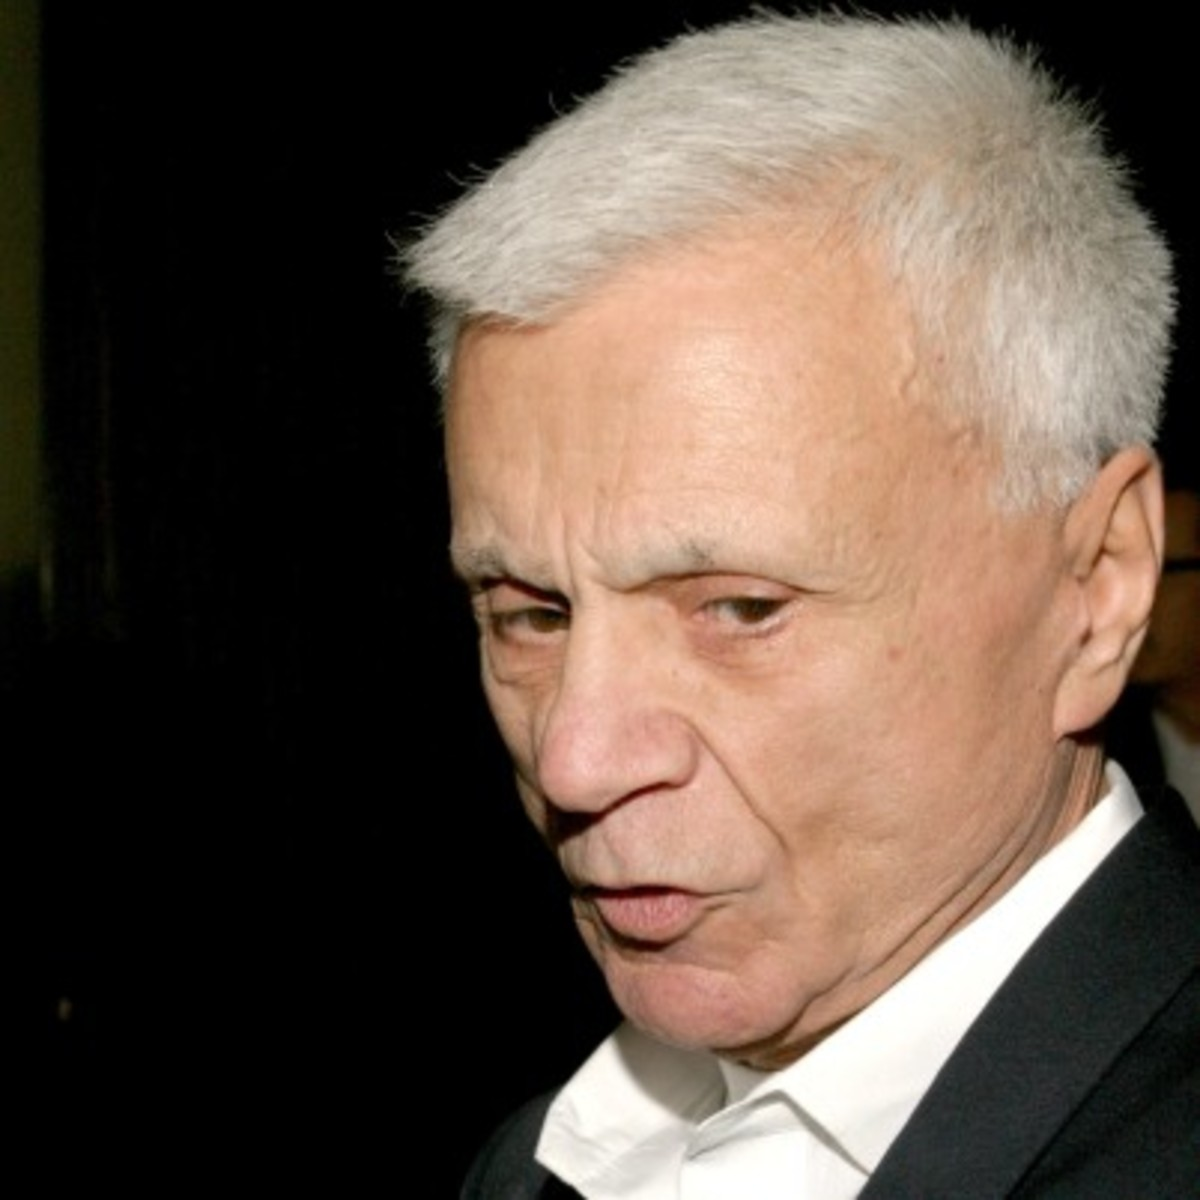 Robert Blake - Age, Children & Movies - Biography